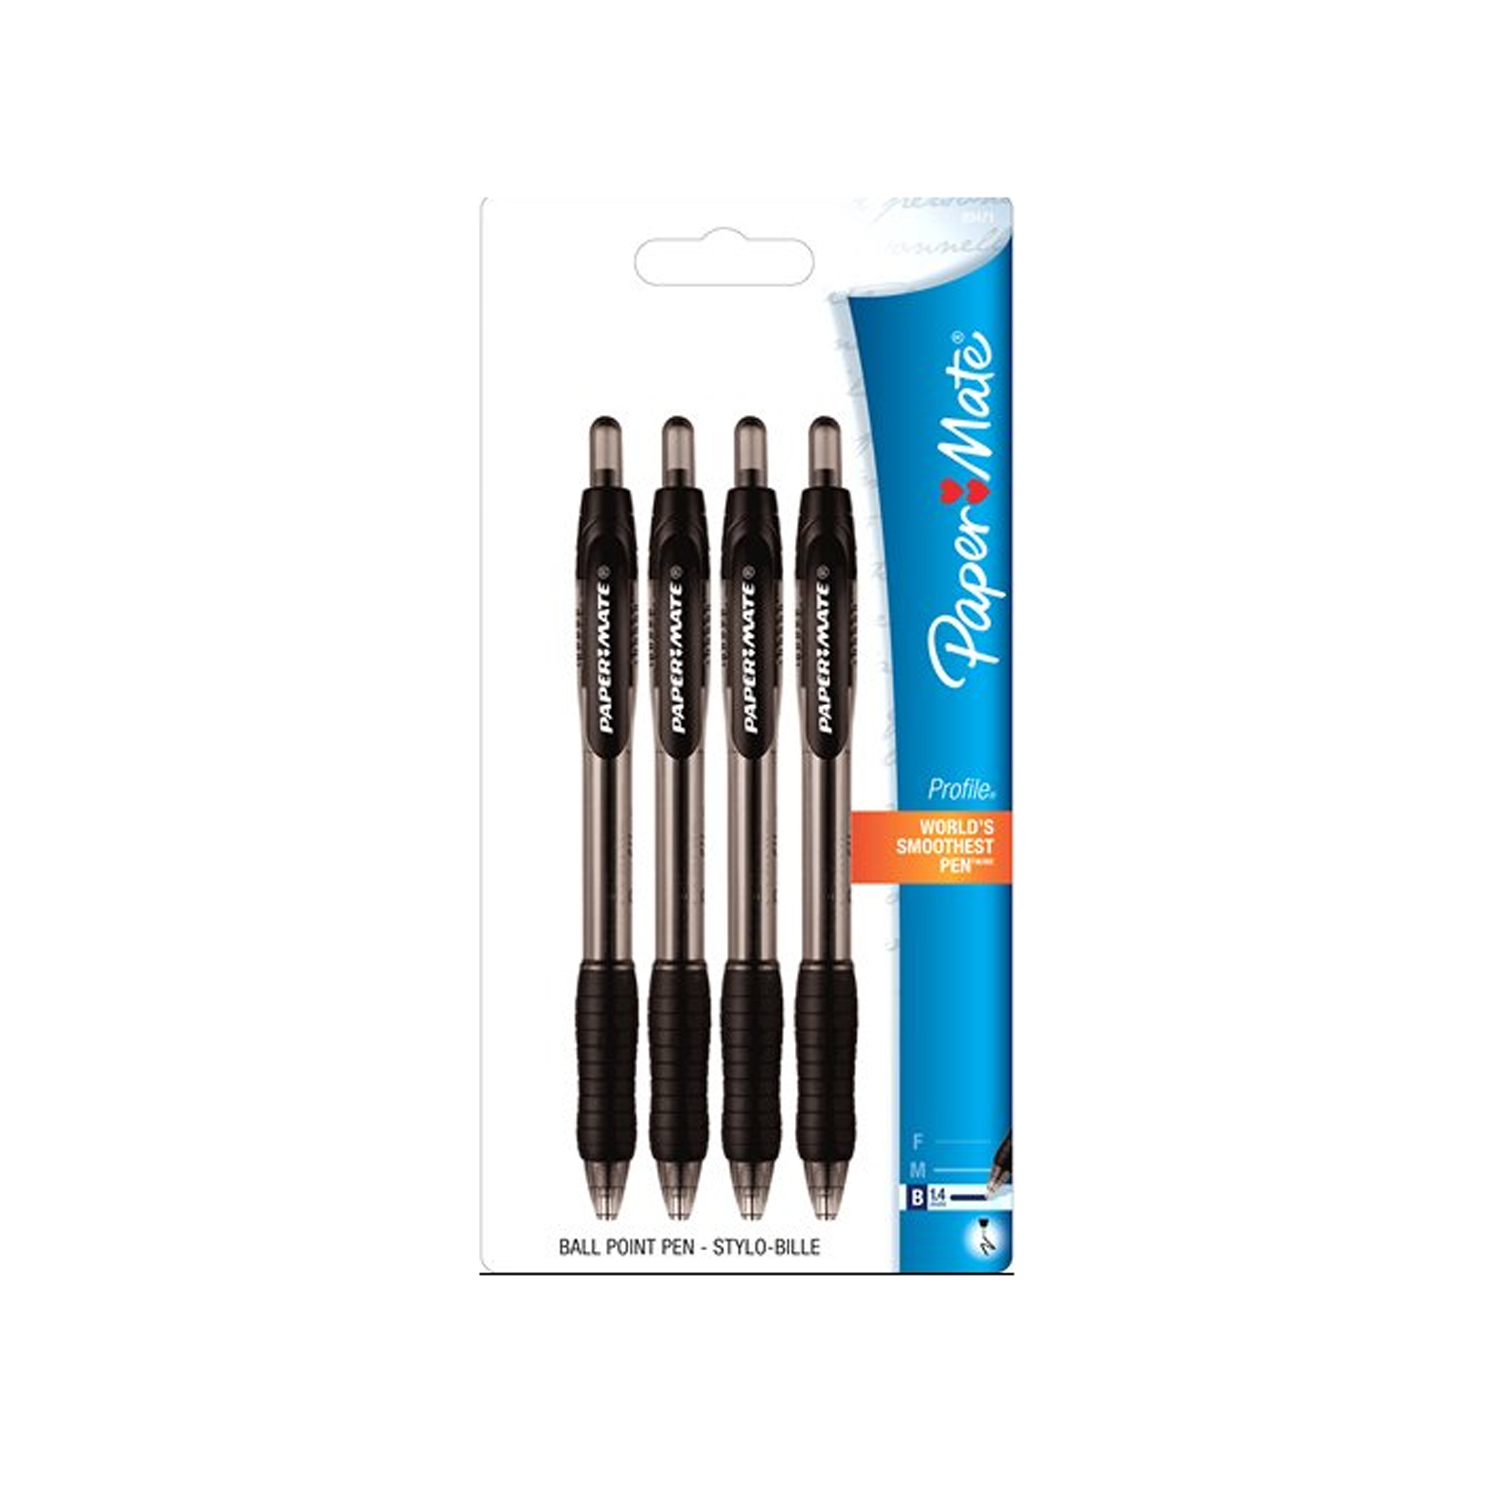 Paper Mate 4pk Profile Retractable Ballpoint Pens, Black